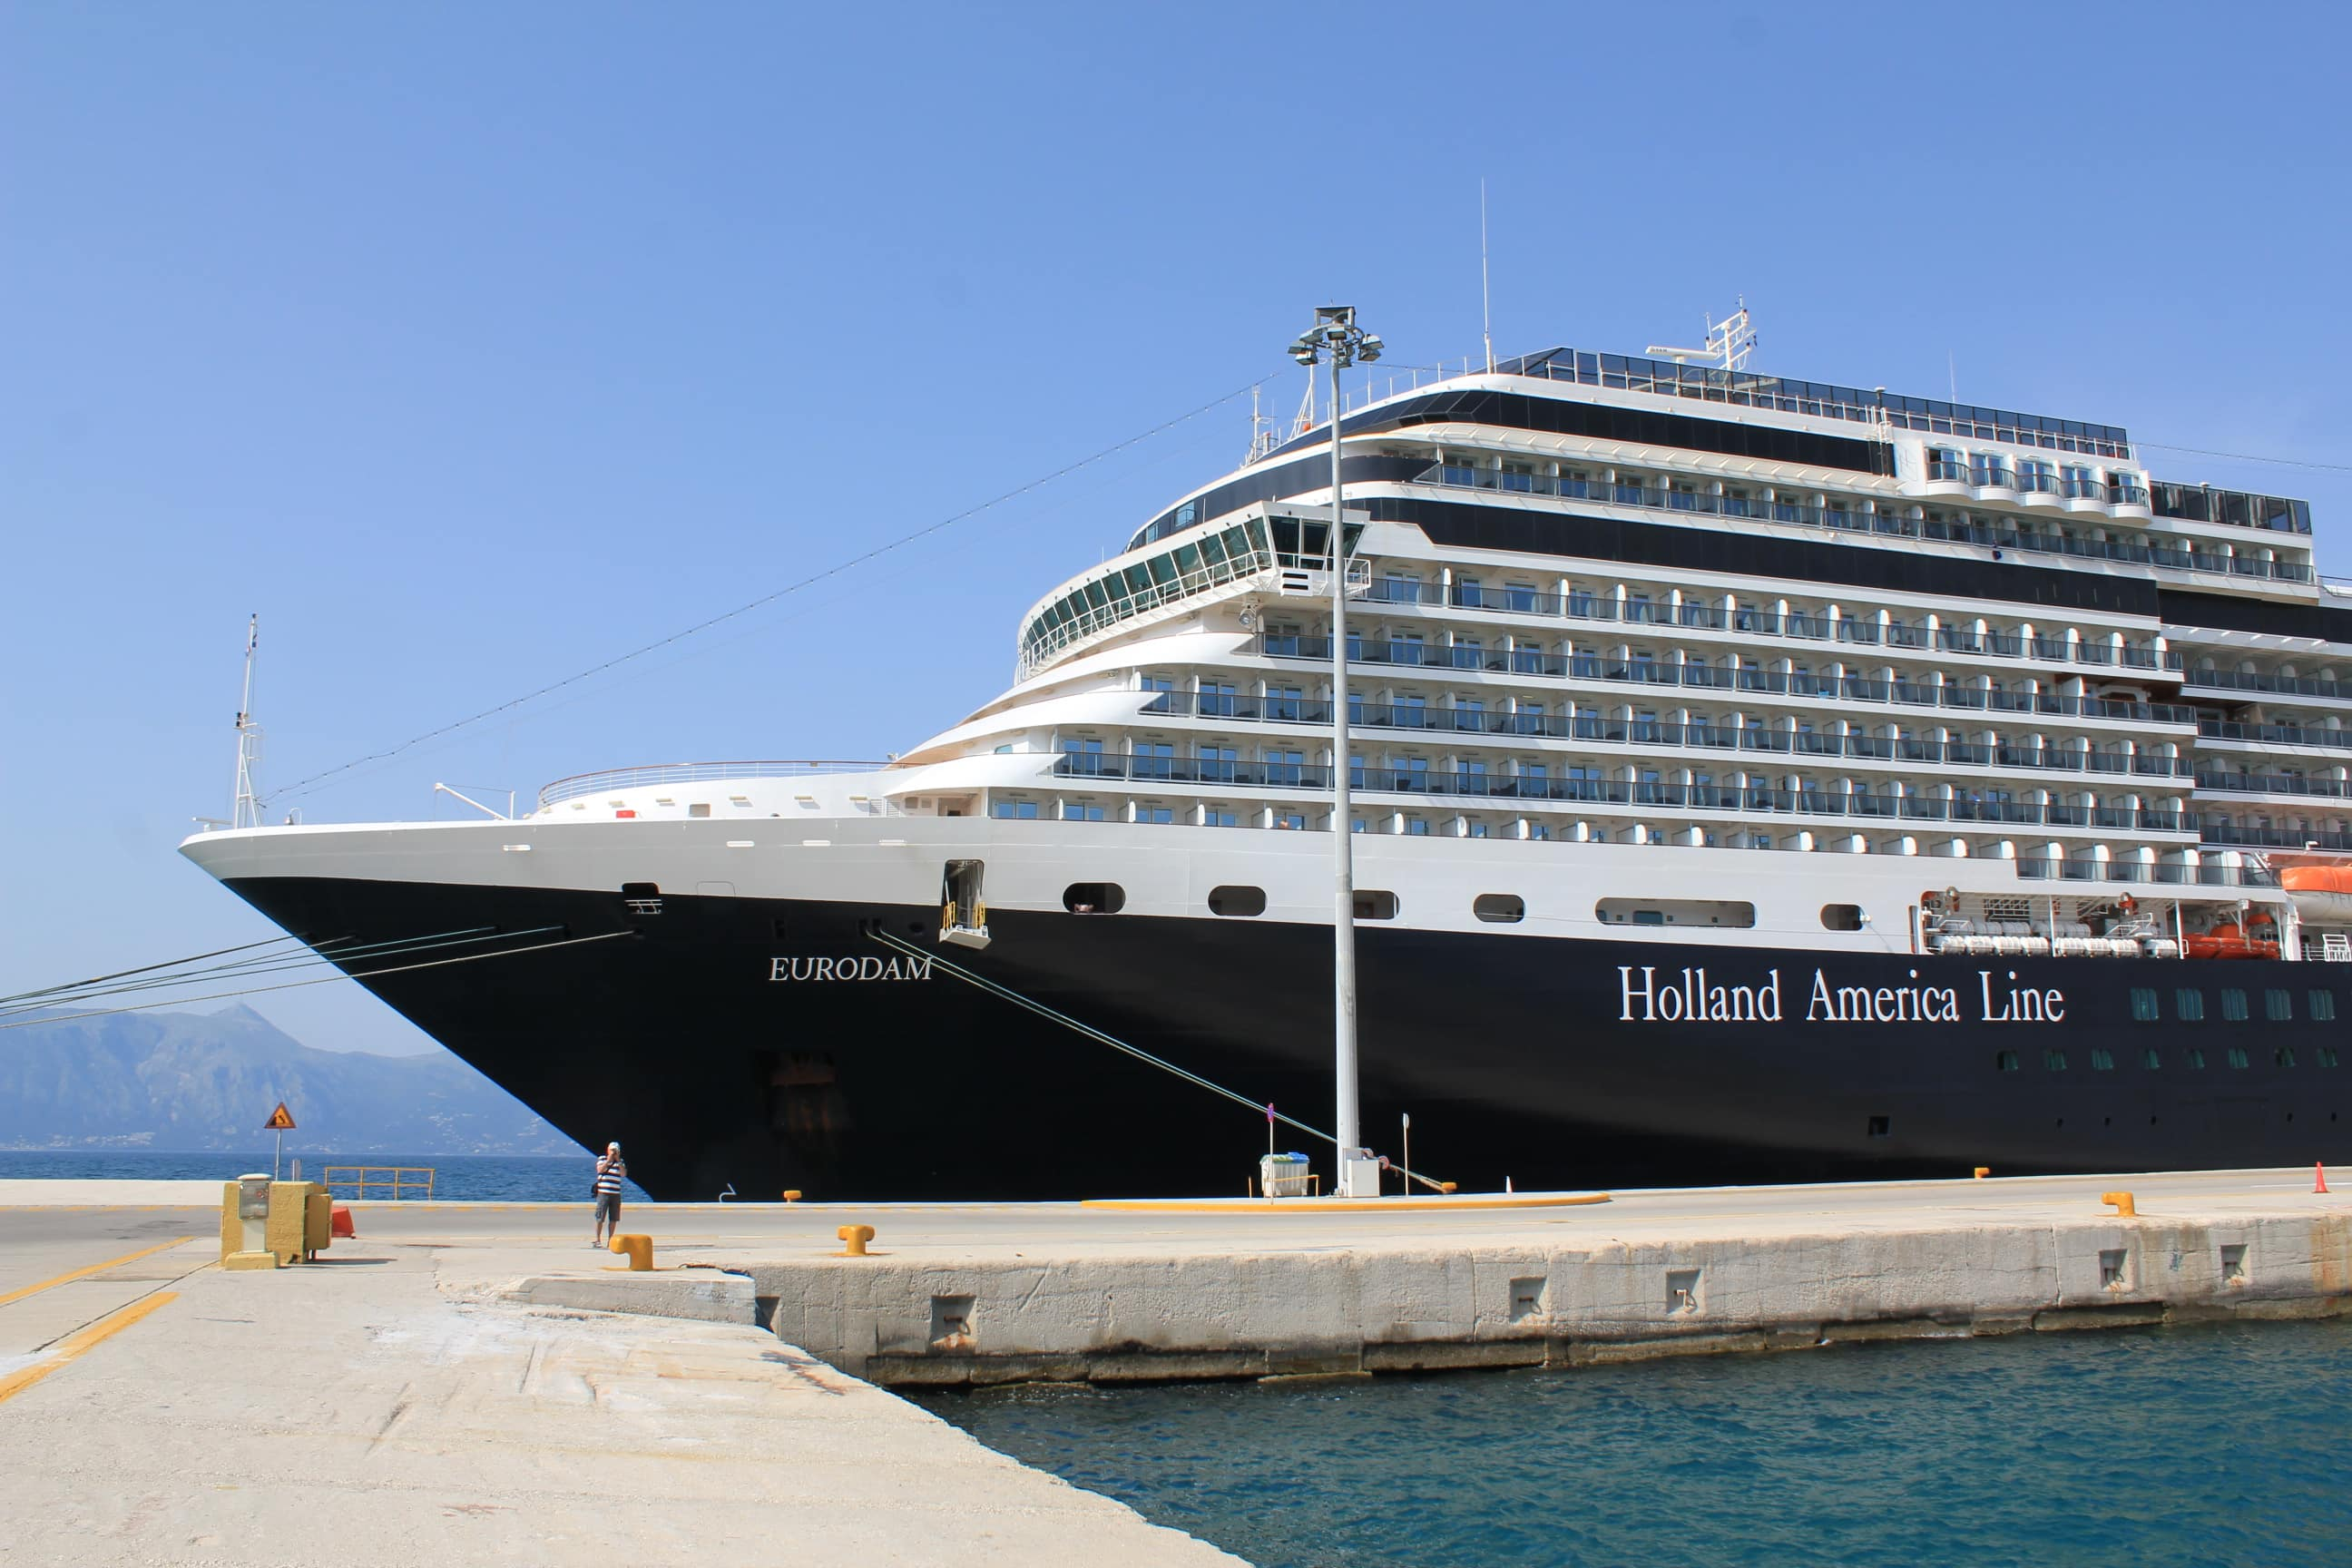 Explore The Beauty Of Caribbean: A First Cruise On Eurodam